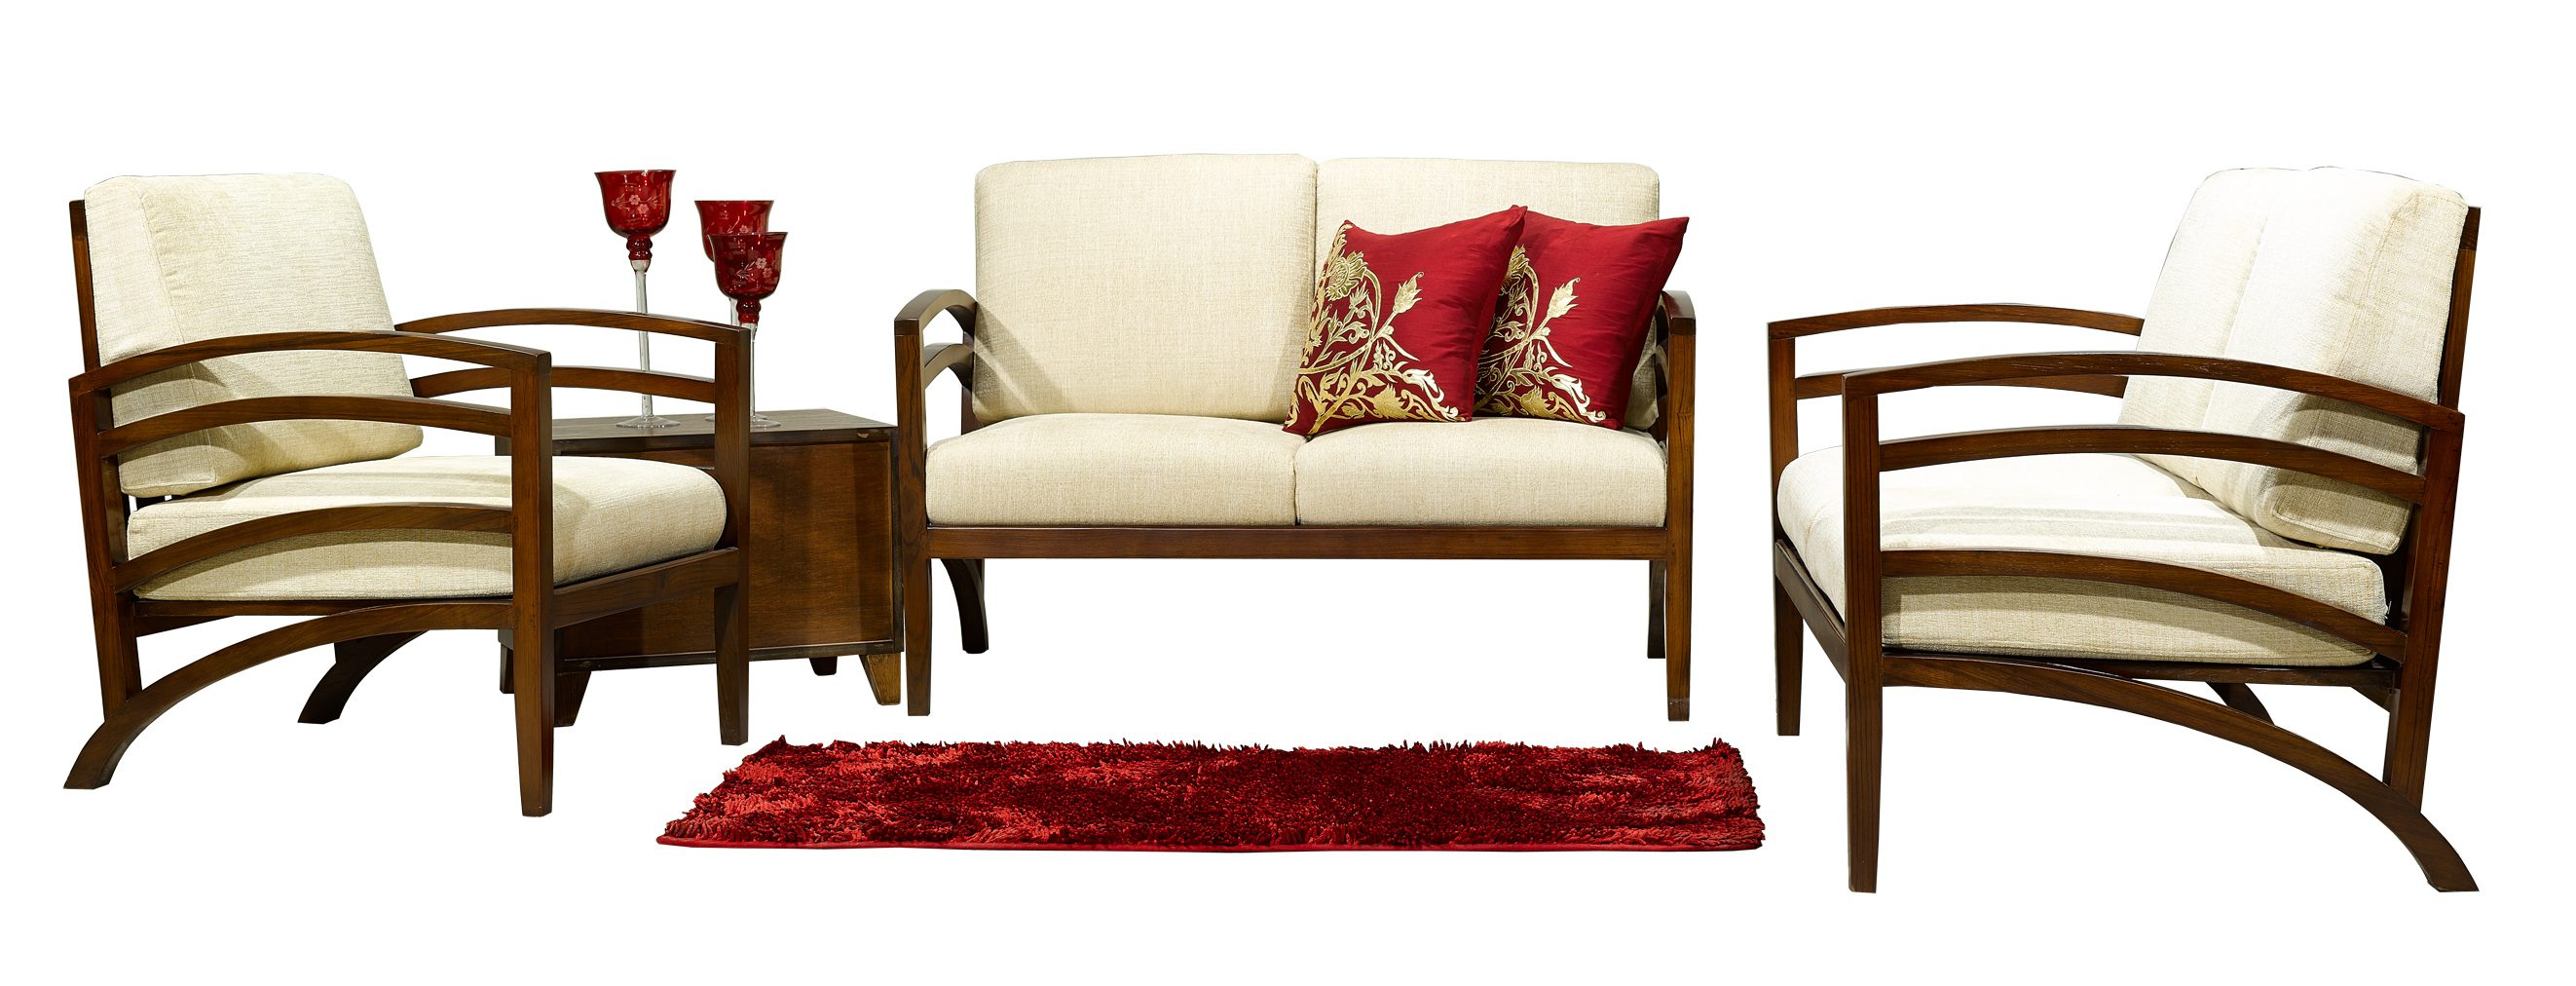 PACO DESIGN EXCLUSIVE SOFA SET - DANISH SOFA SET-SLIM DESIGN